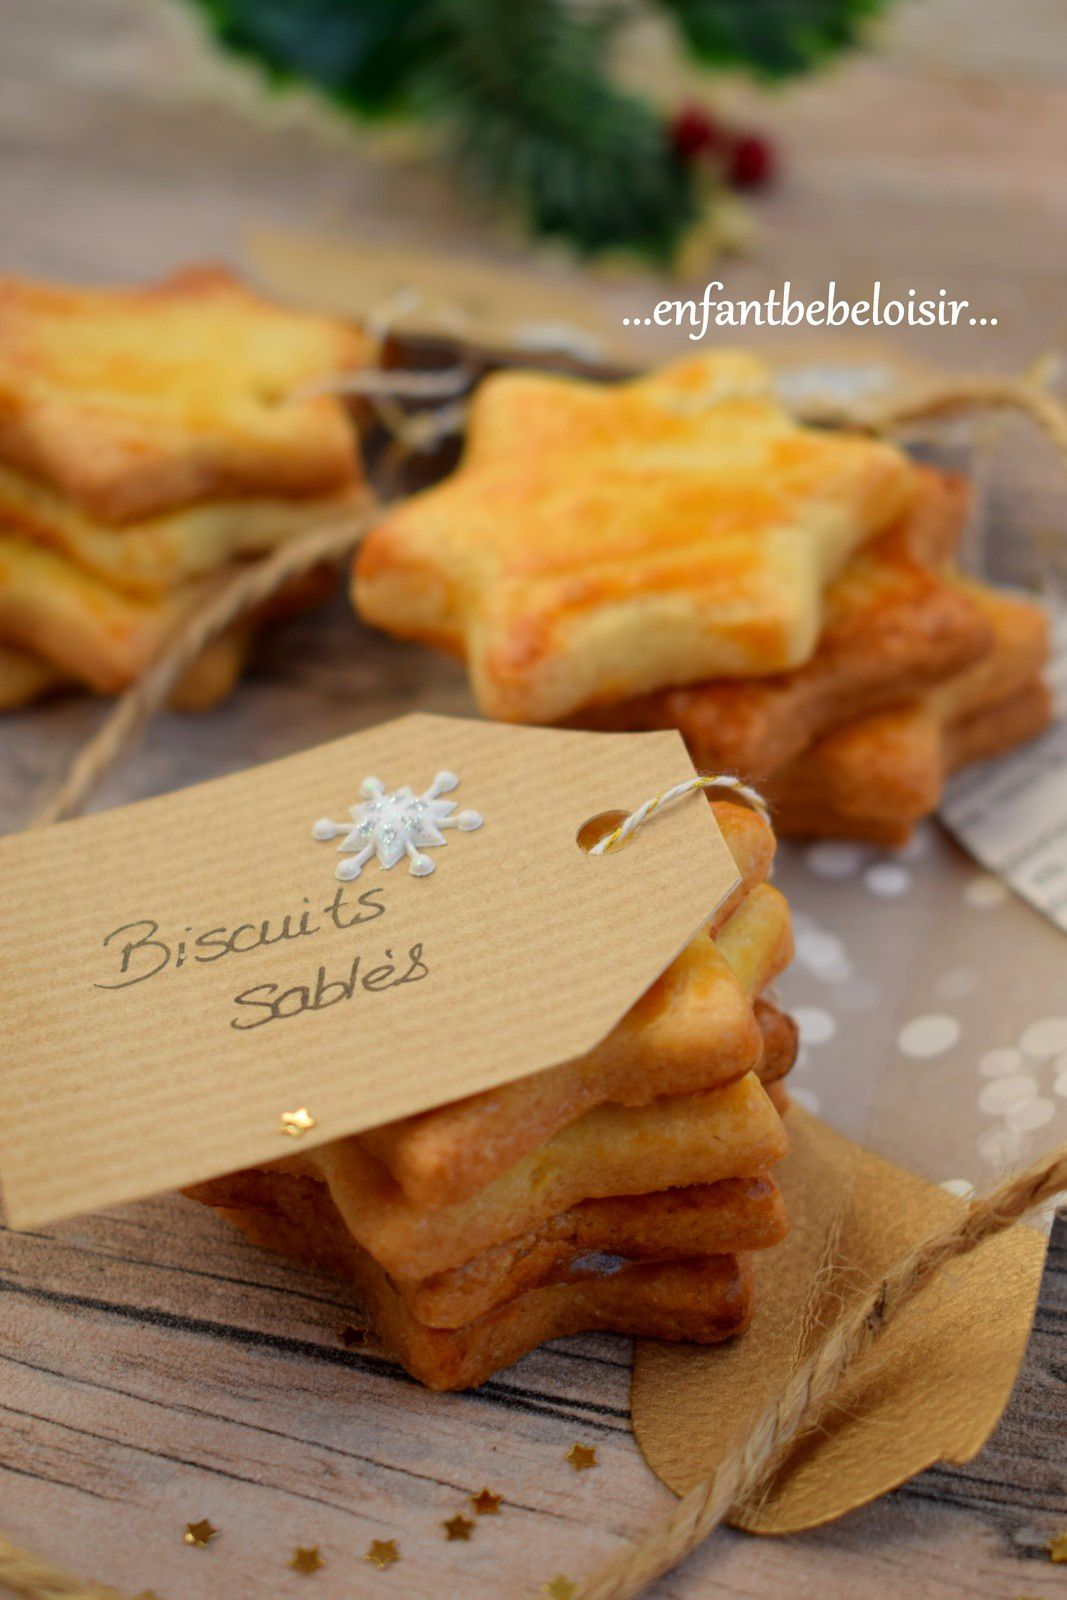 Paniers gourmands - Biscuits sablés